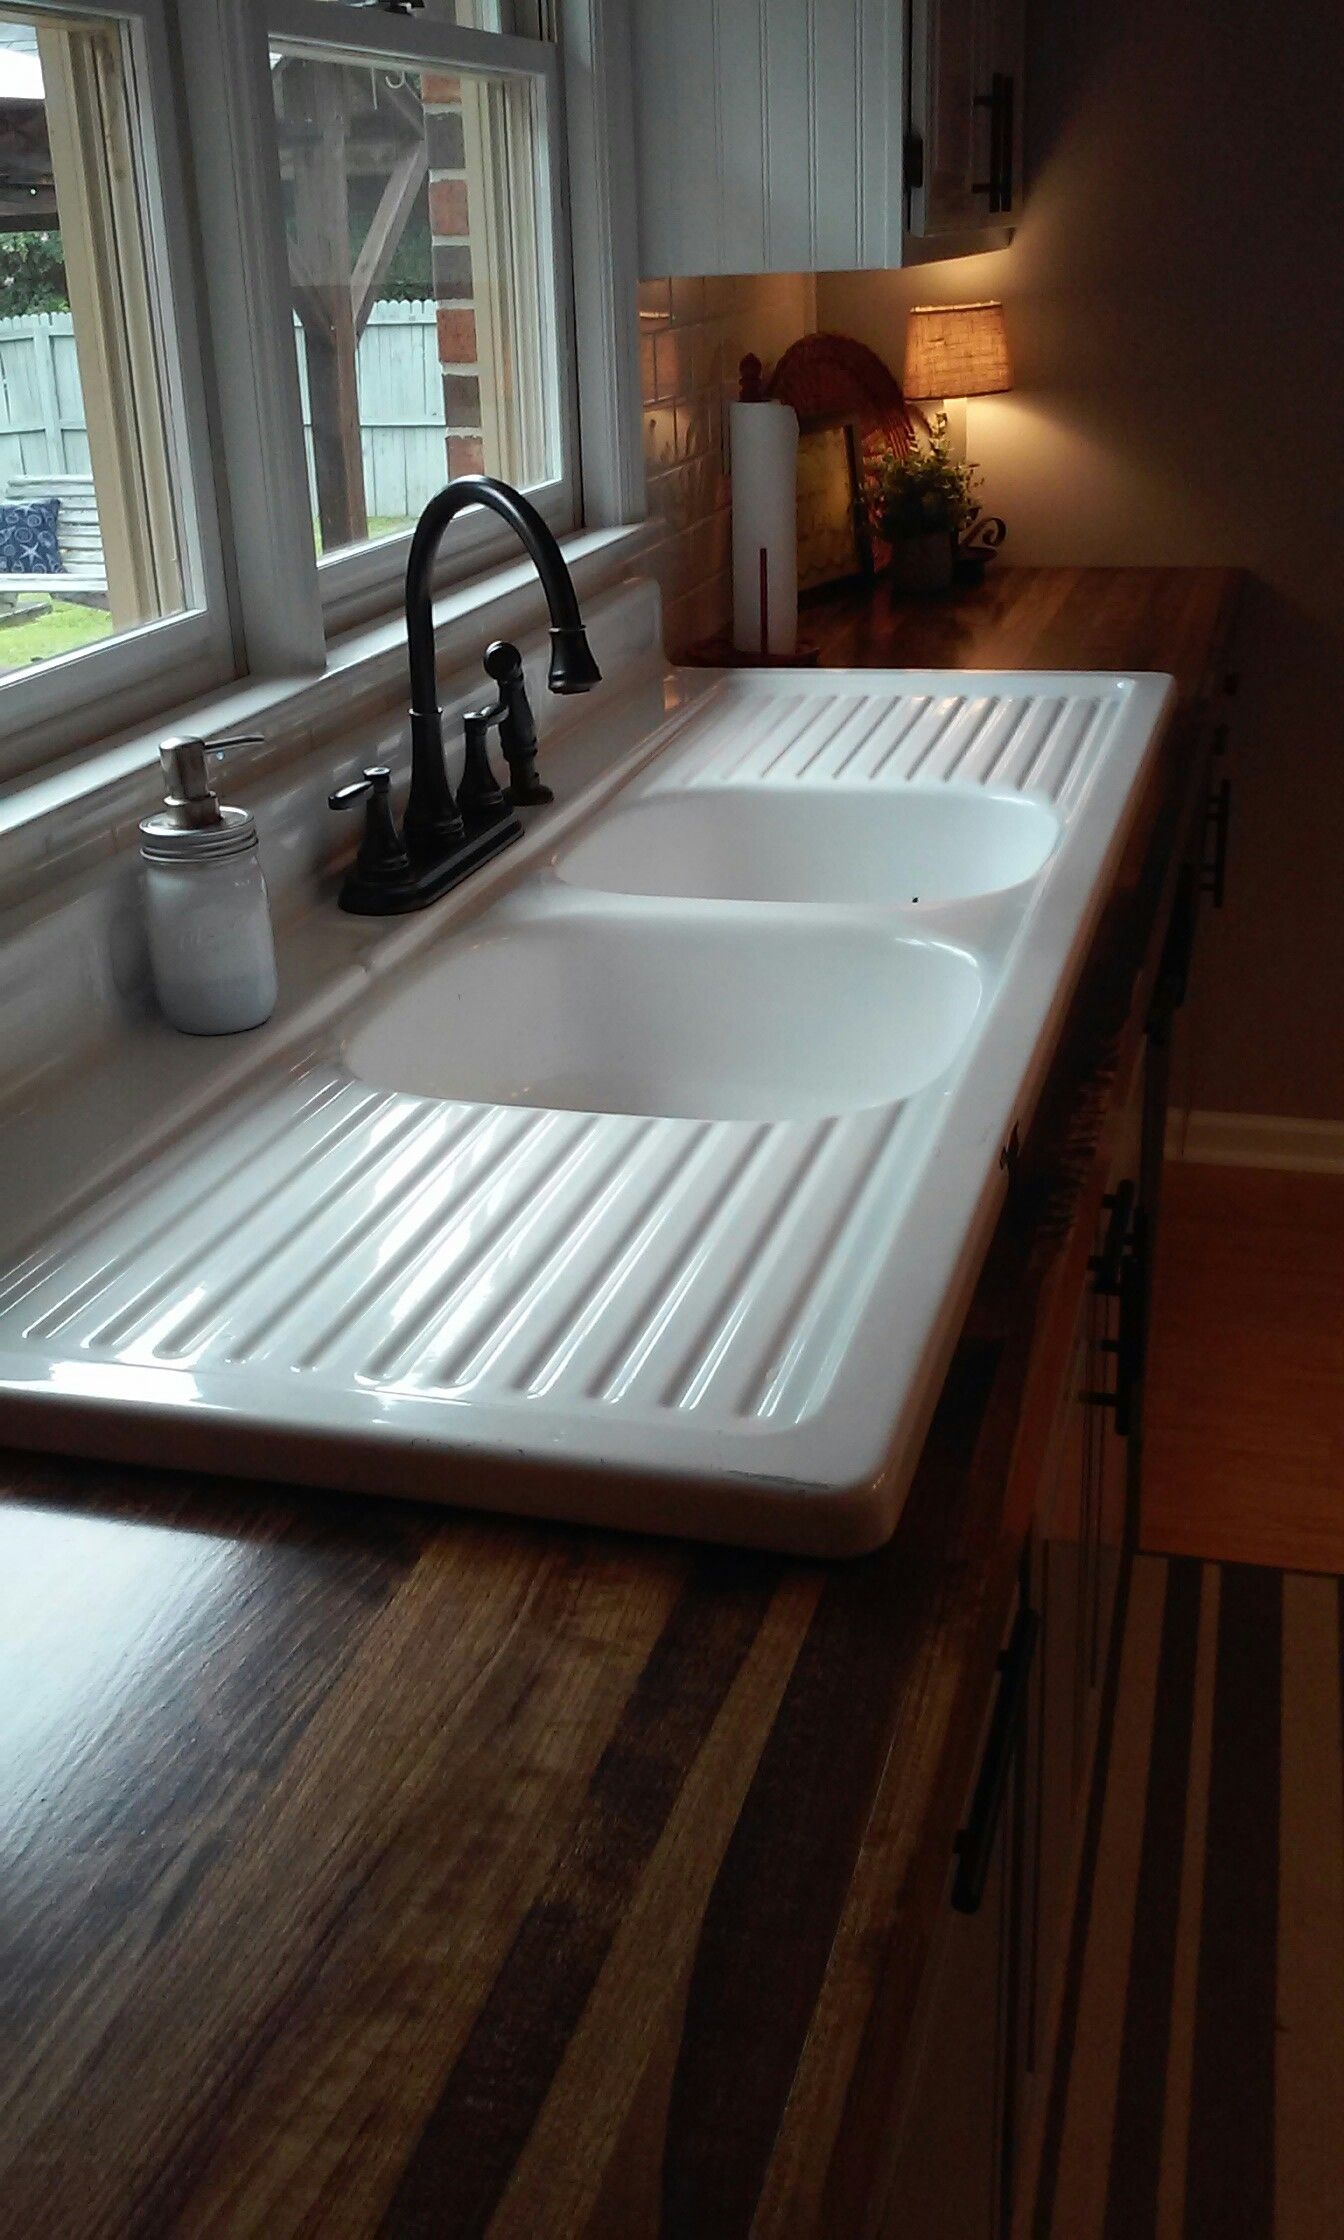 Finished Our Wooden Countertops And Installed 65 Yr Old Farmhouse Drainboard Sink More Pictures Of Remodeled Kitchen Under My Board Homemade